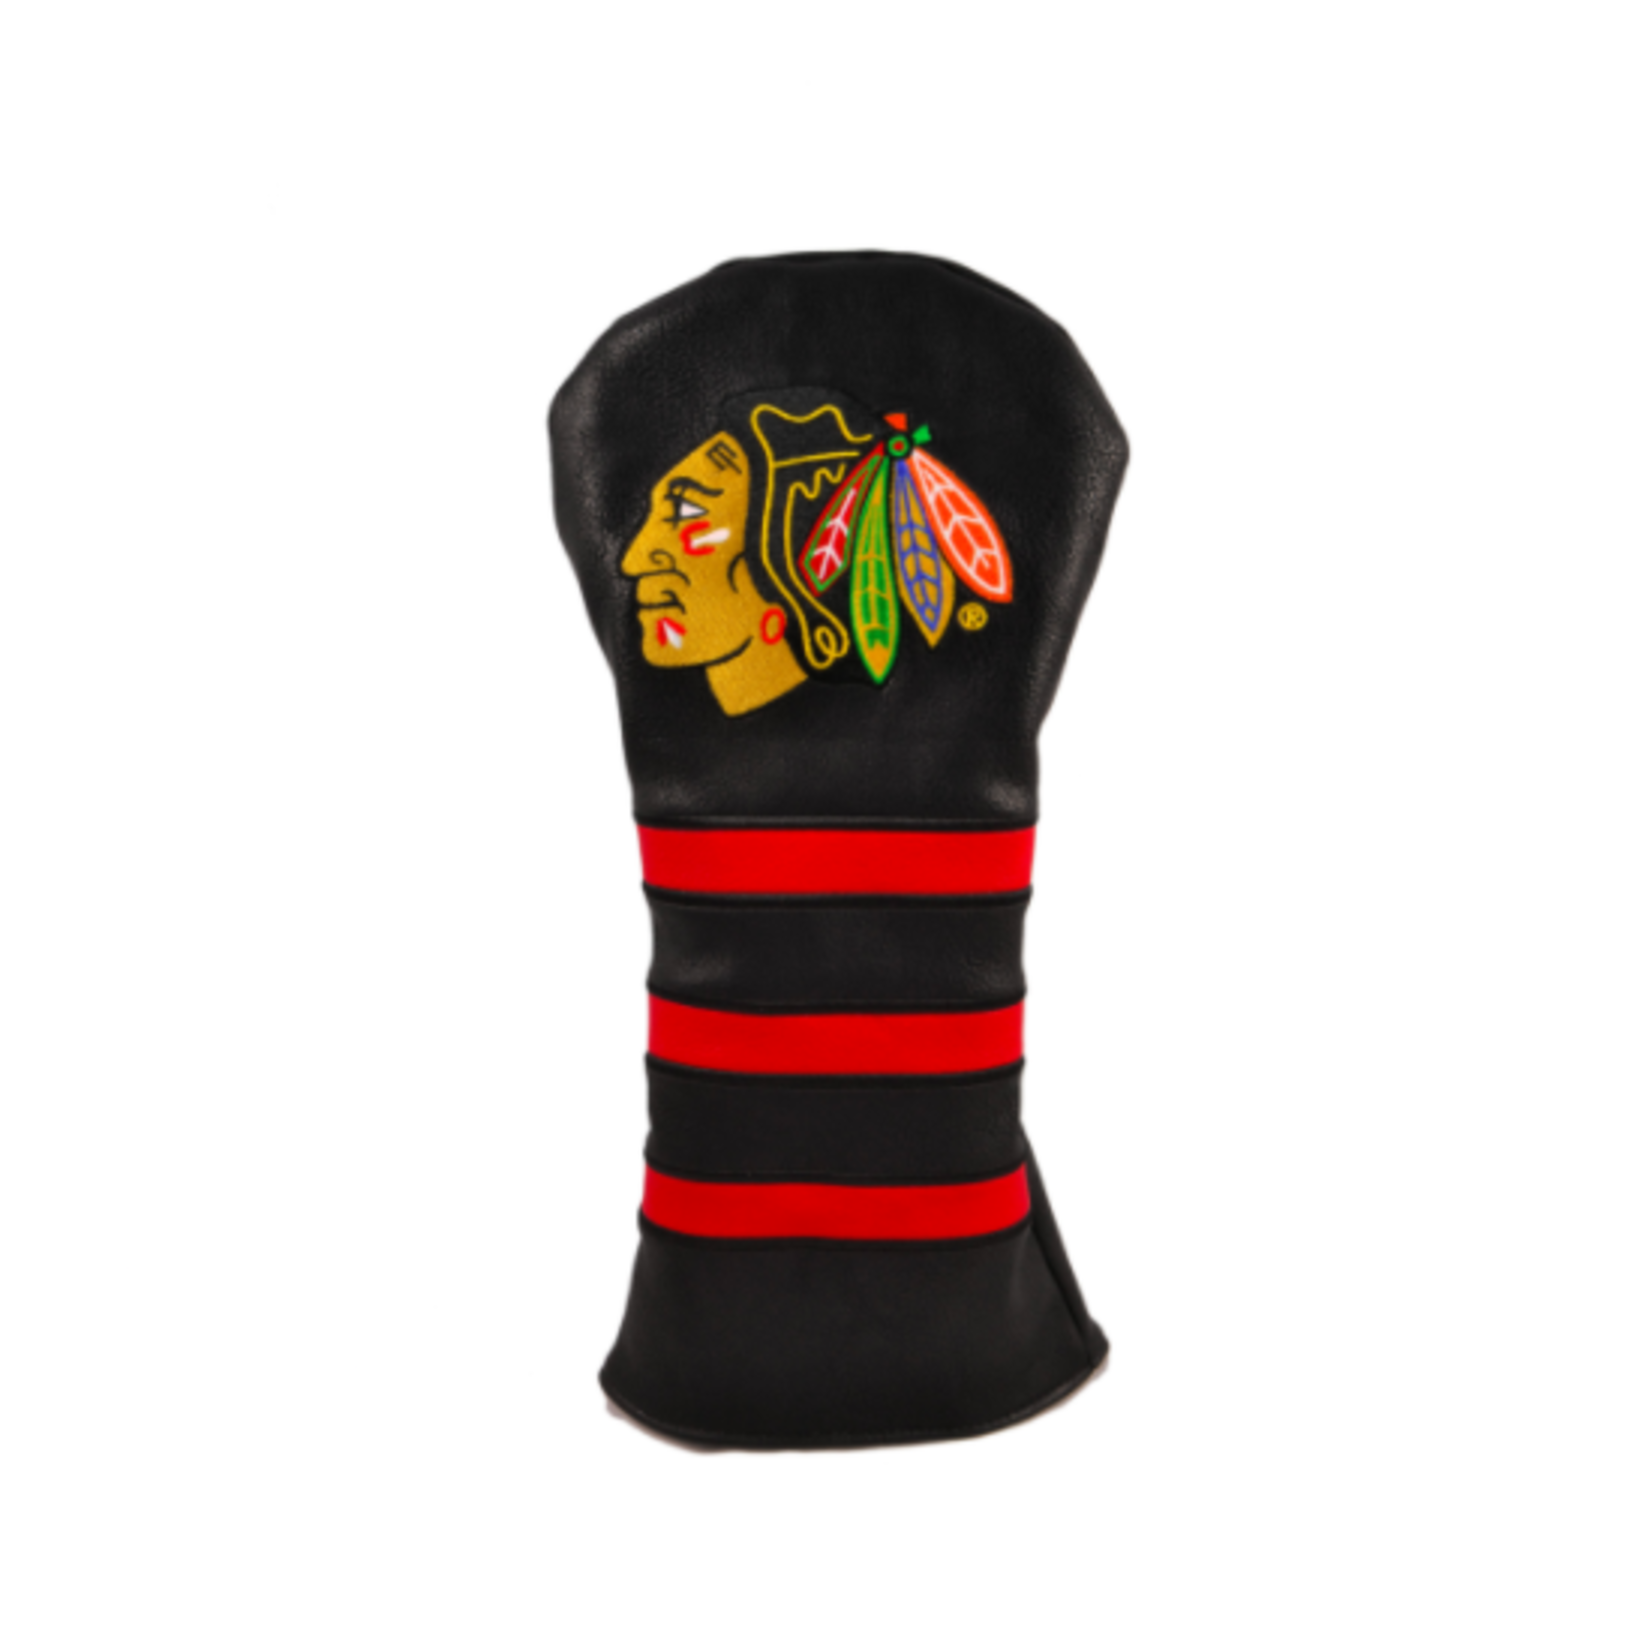 CaddyPro NHL Vintage Driver Headcover